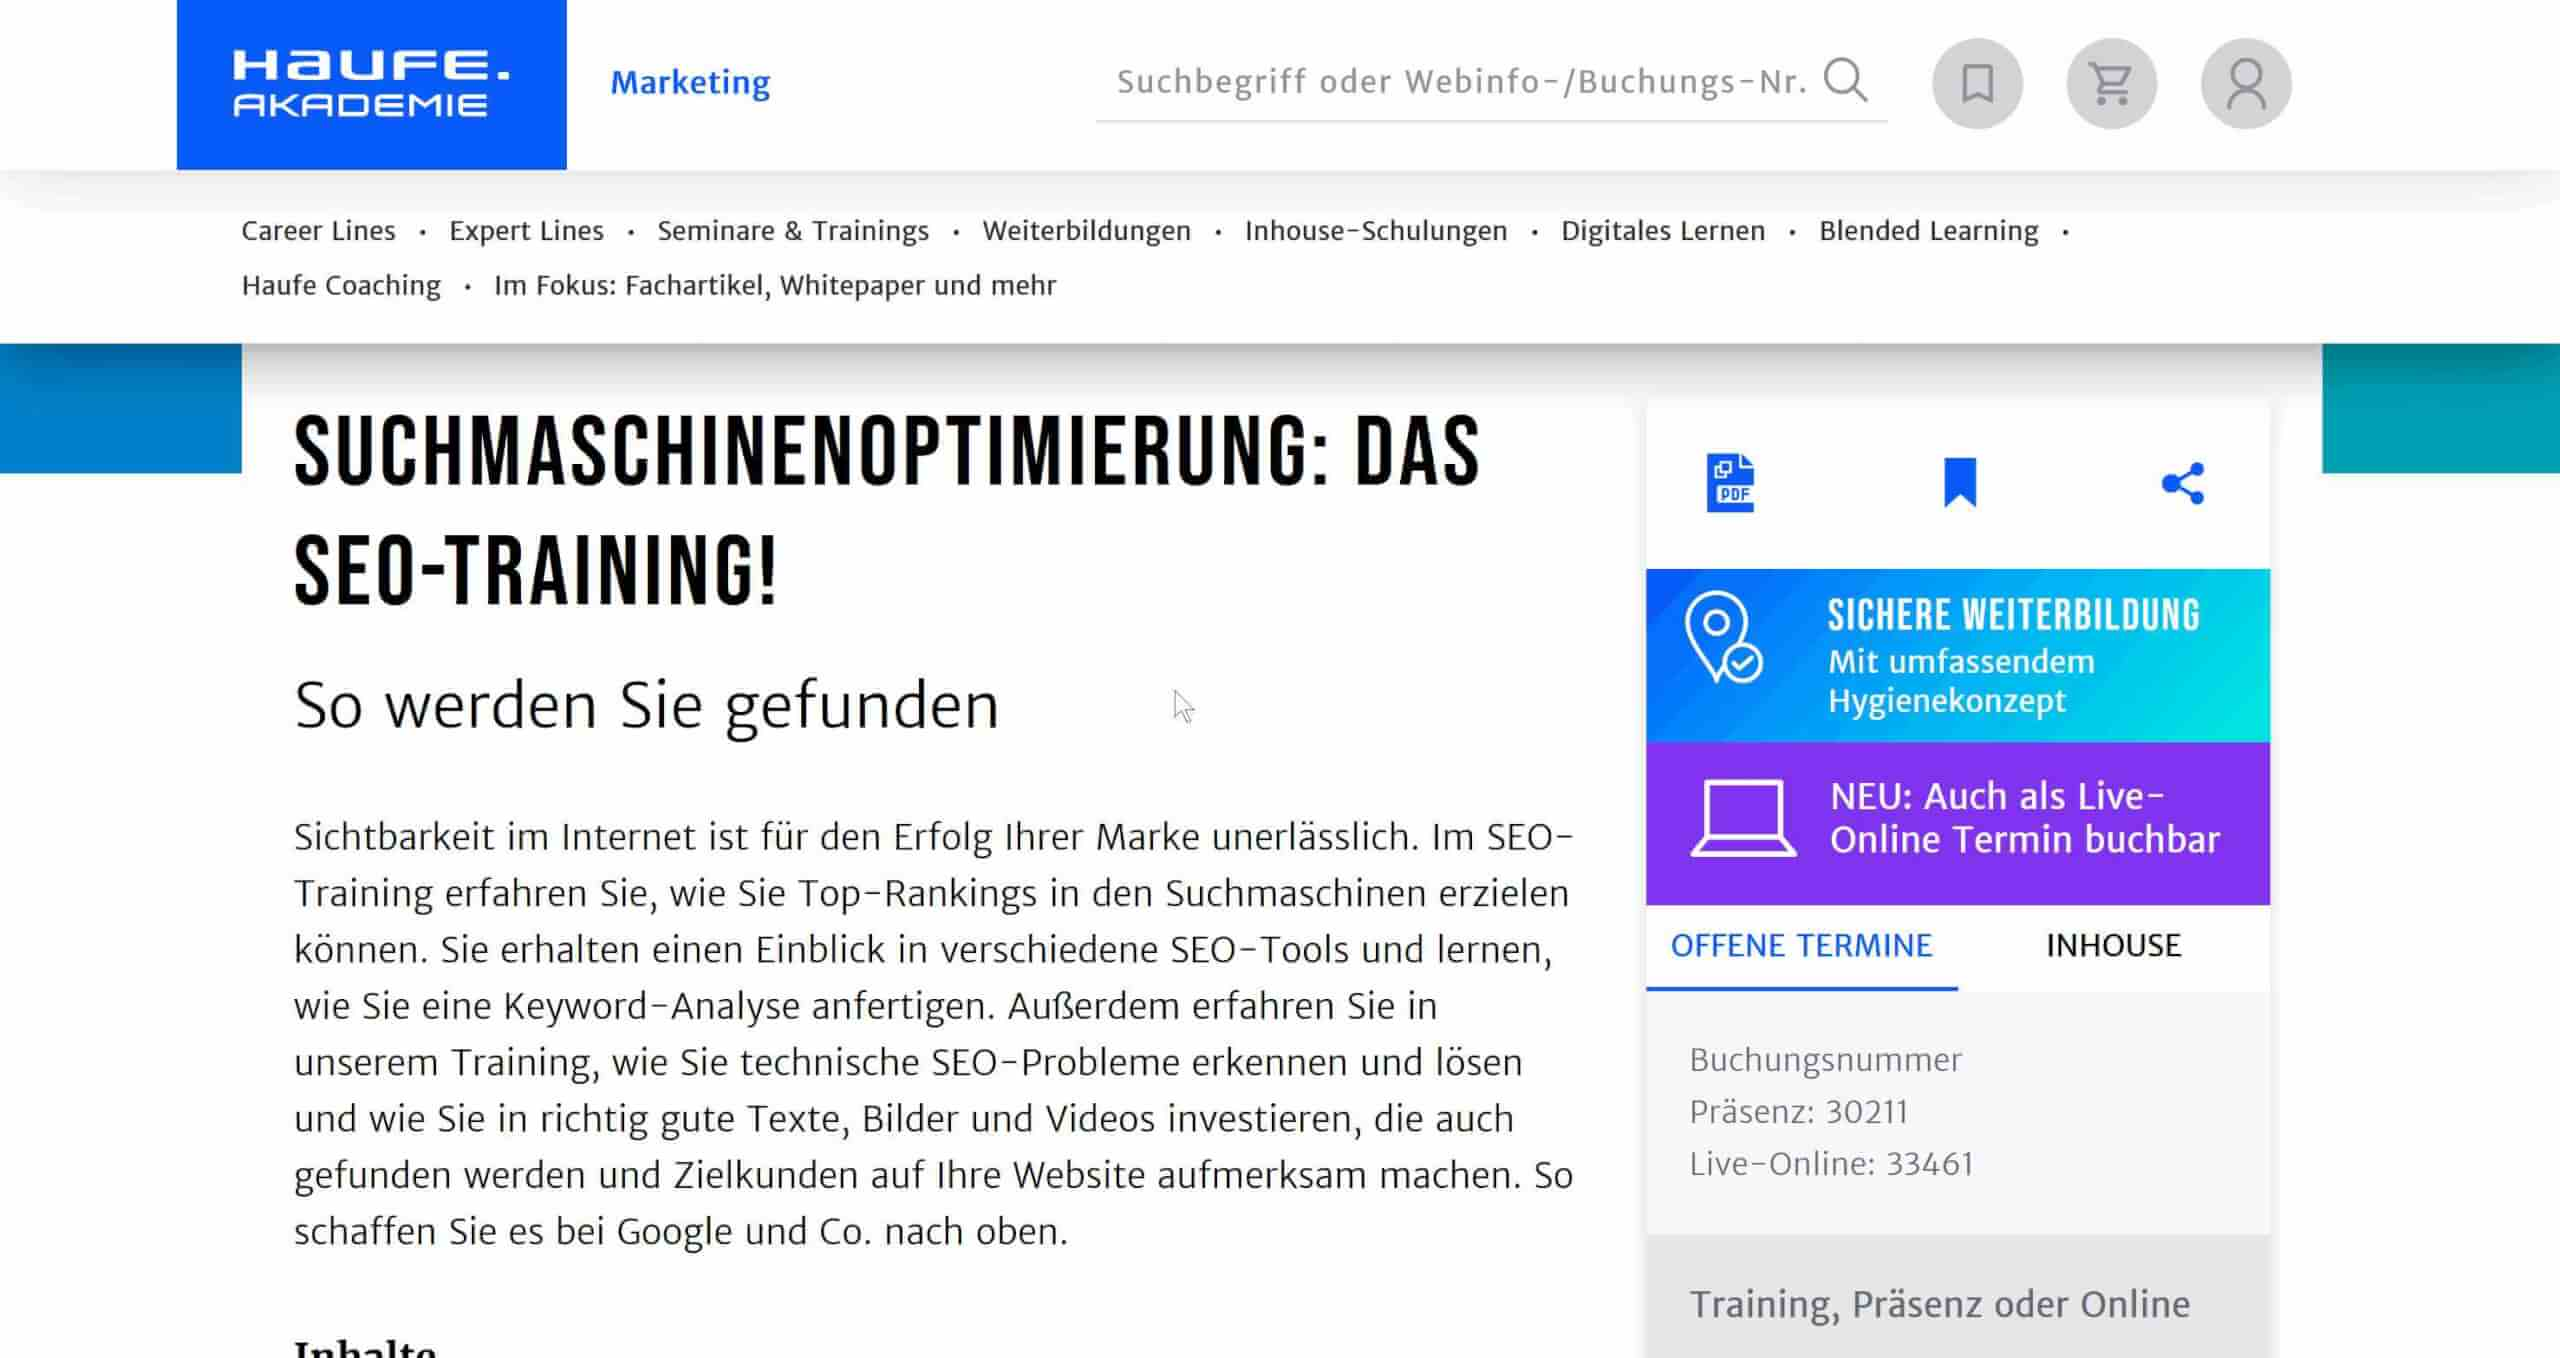 Haufe Akademie SEO Training